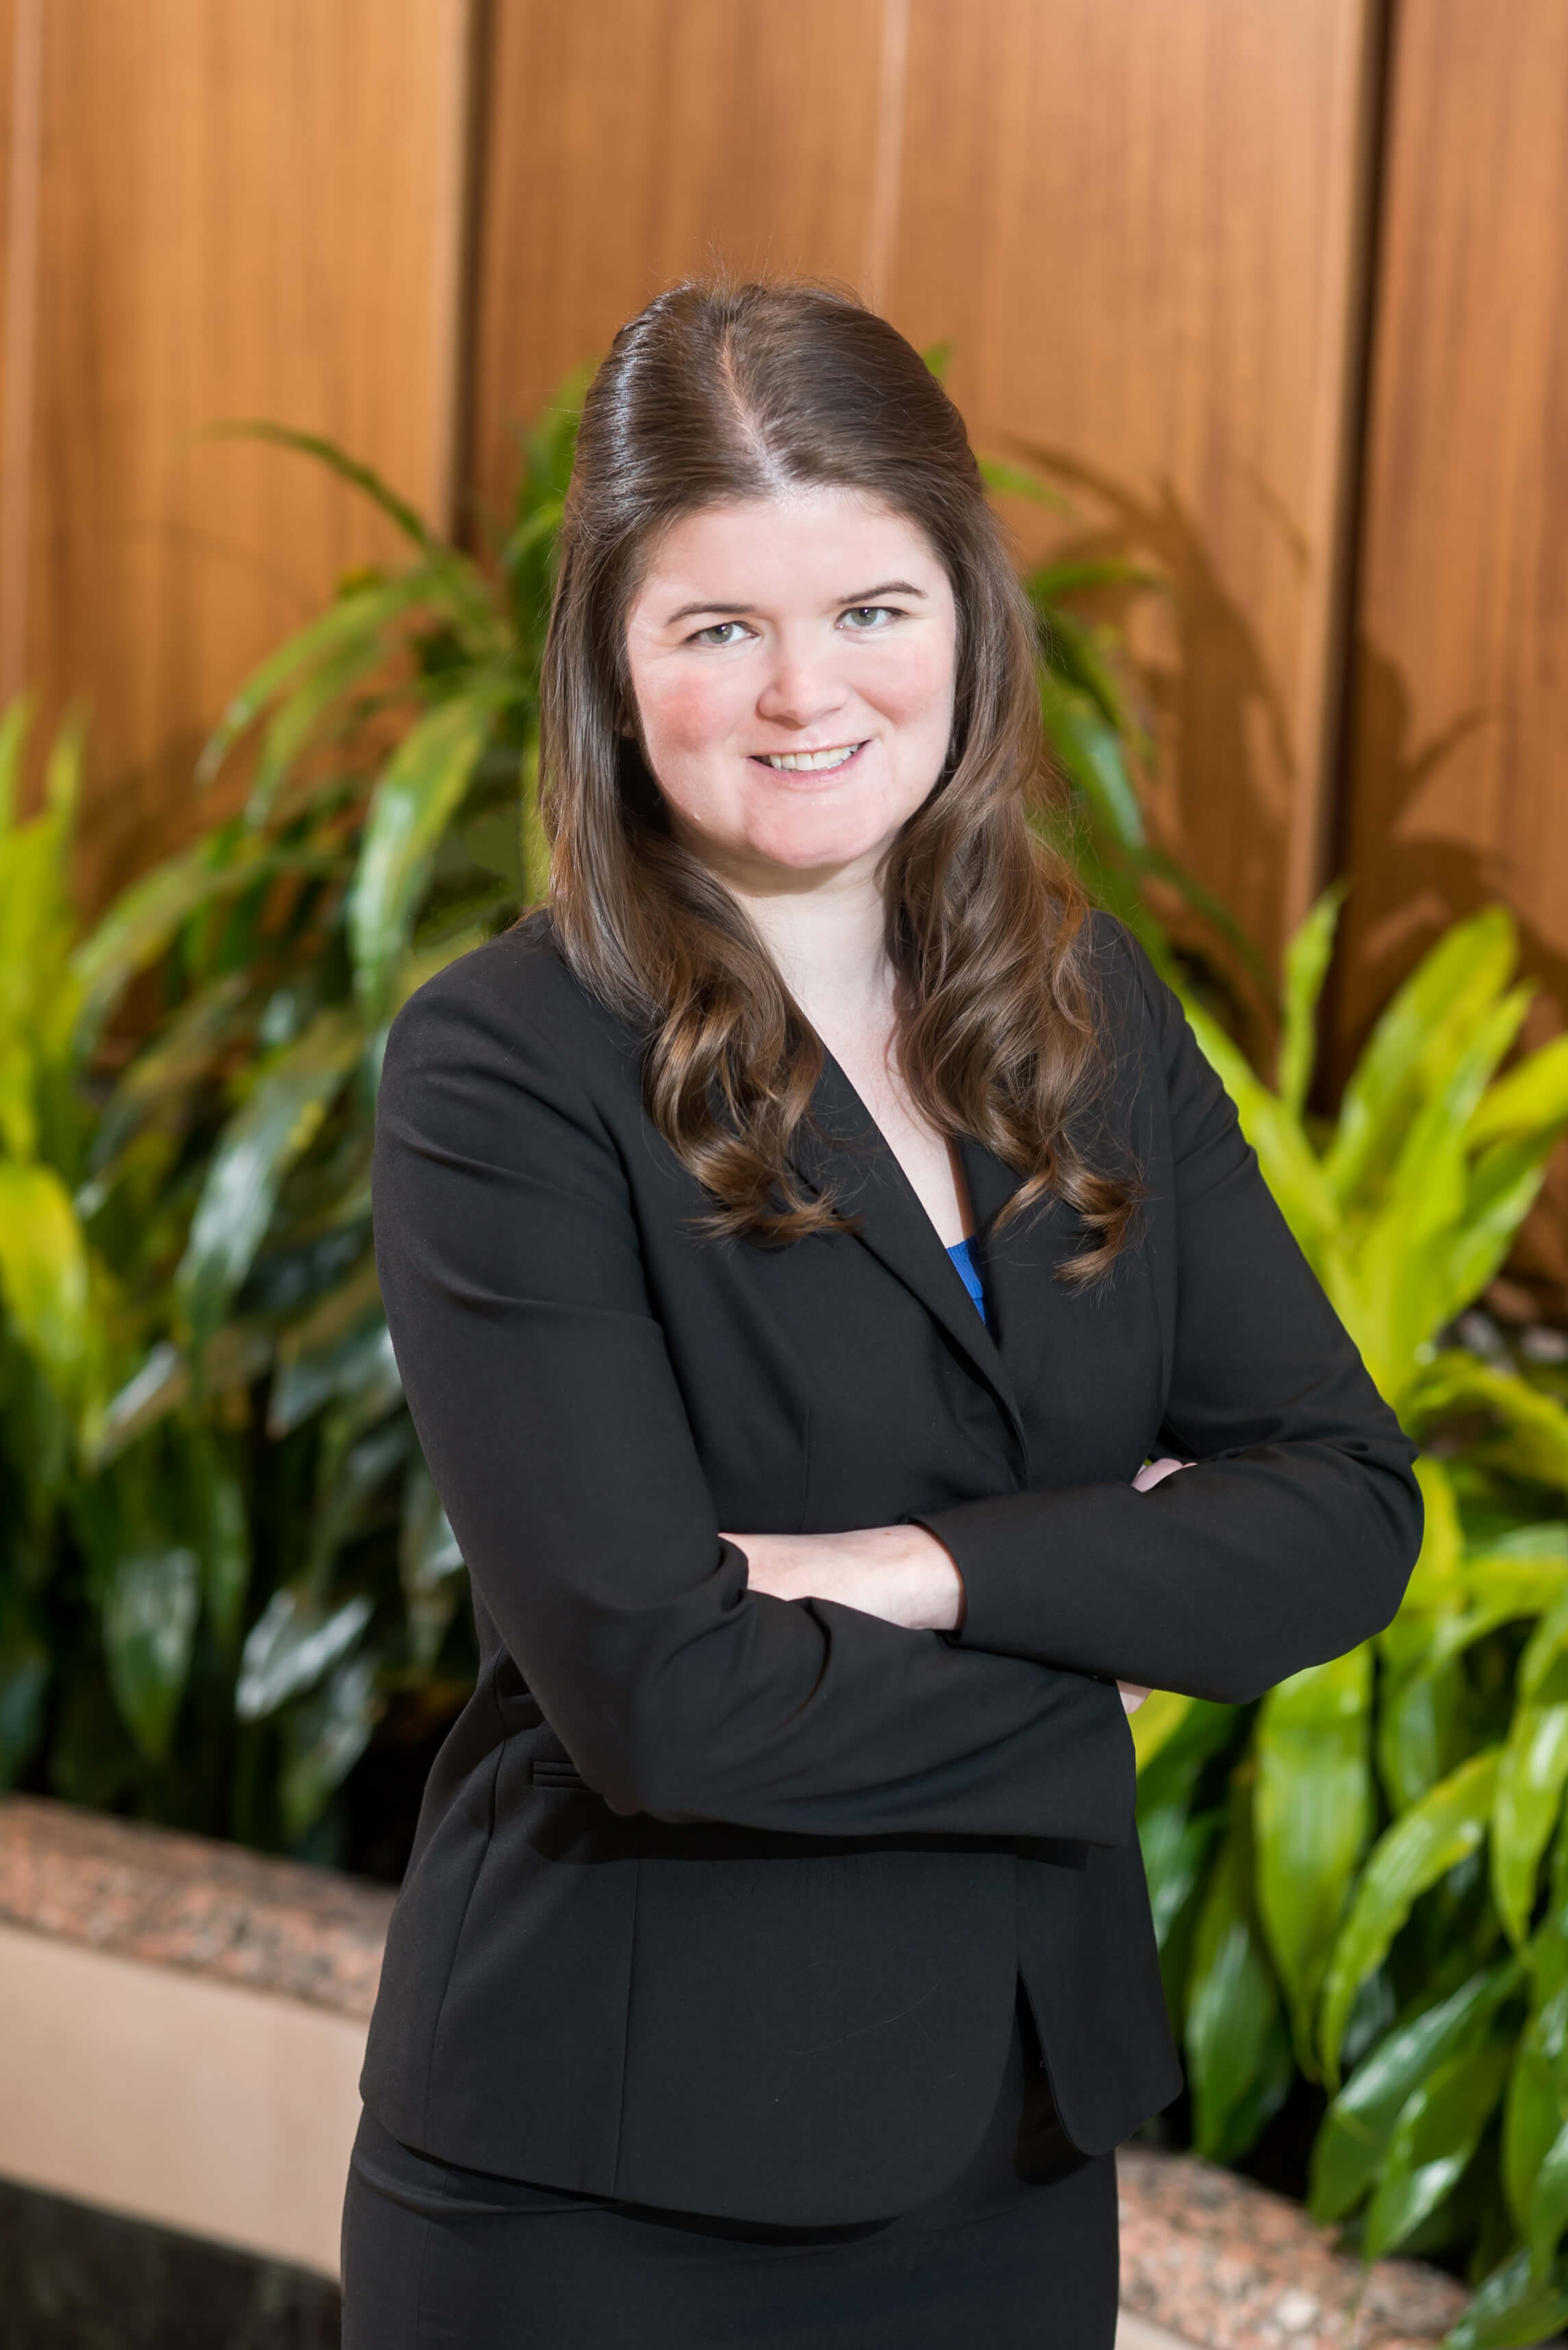 Amanda Kimble, Senior Associate